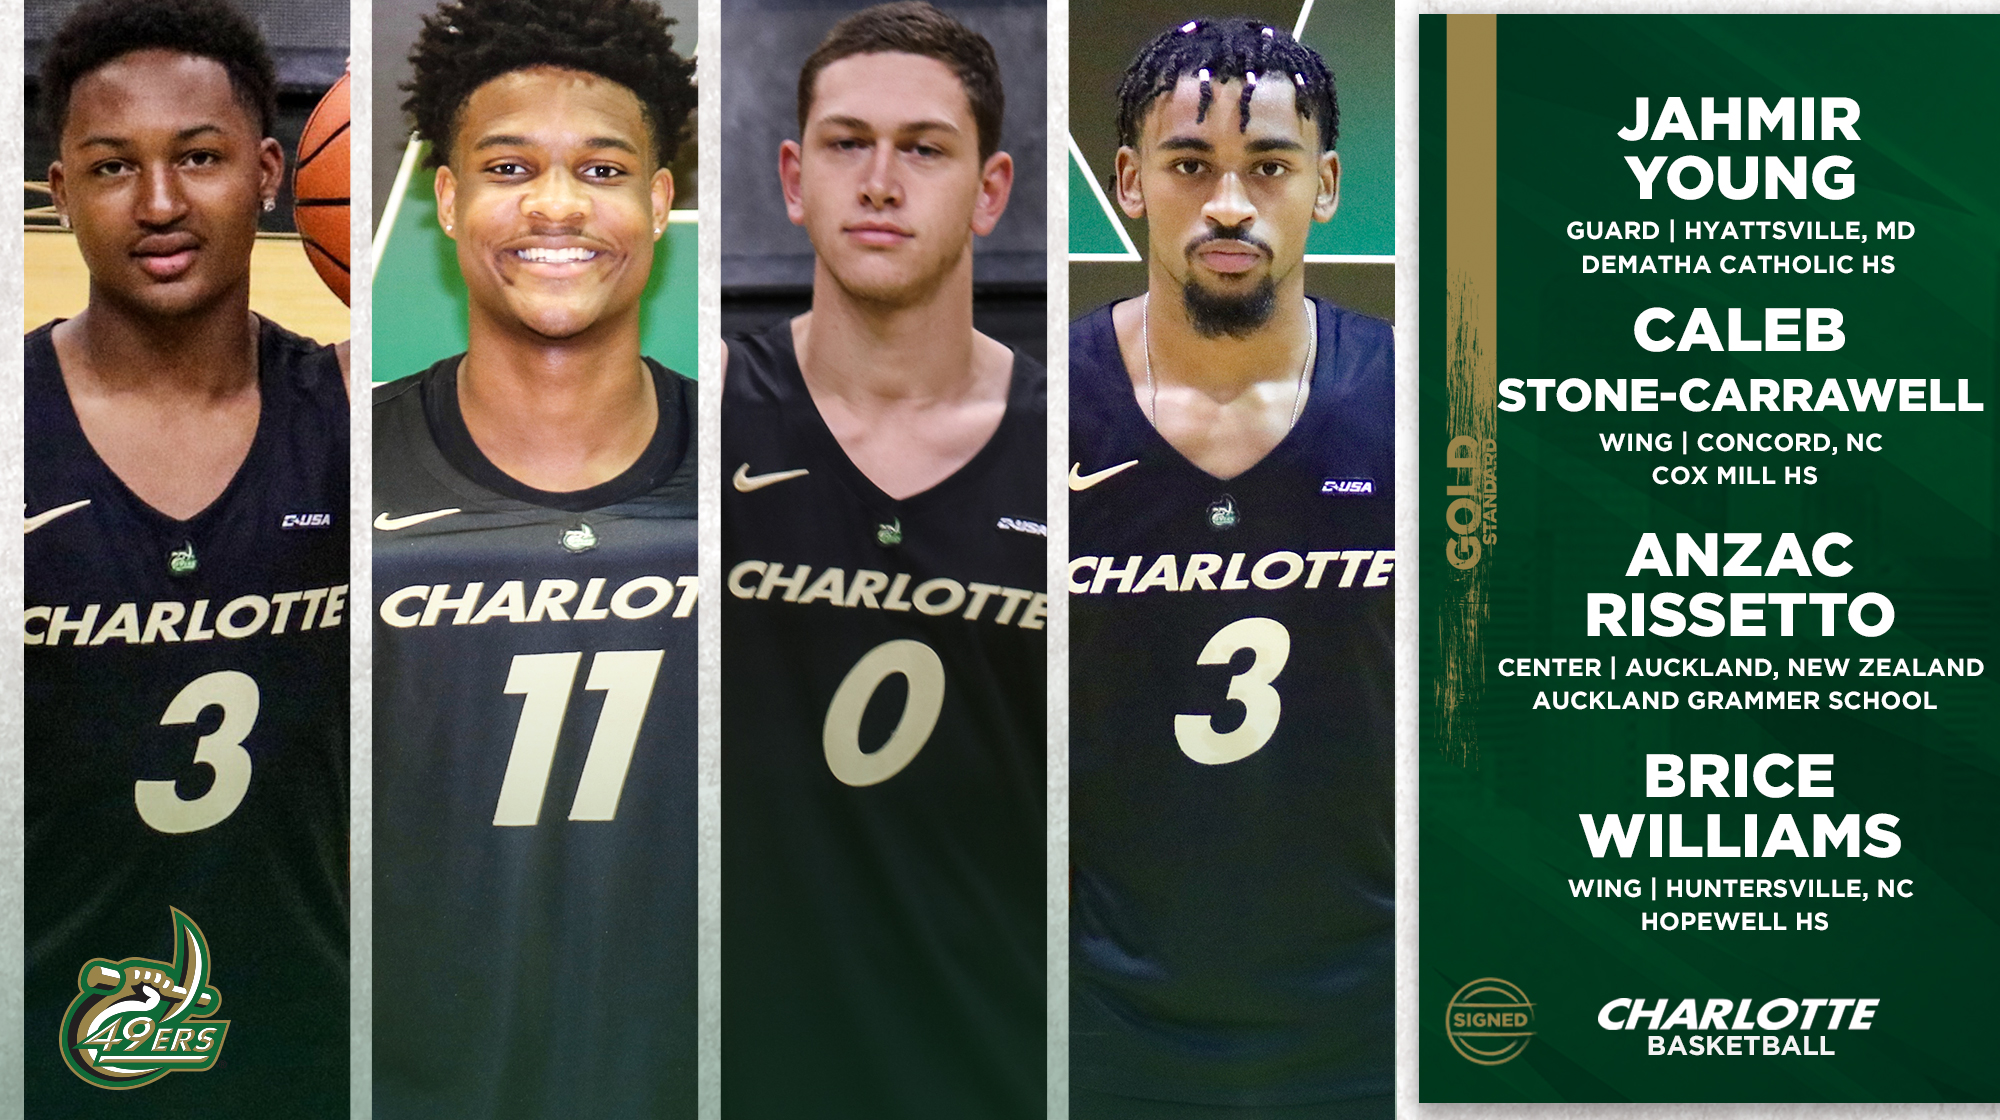 a2372b859 Charlotte 49ers Sign Four Talented Prep Standouts - UNC Charlotte ...